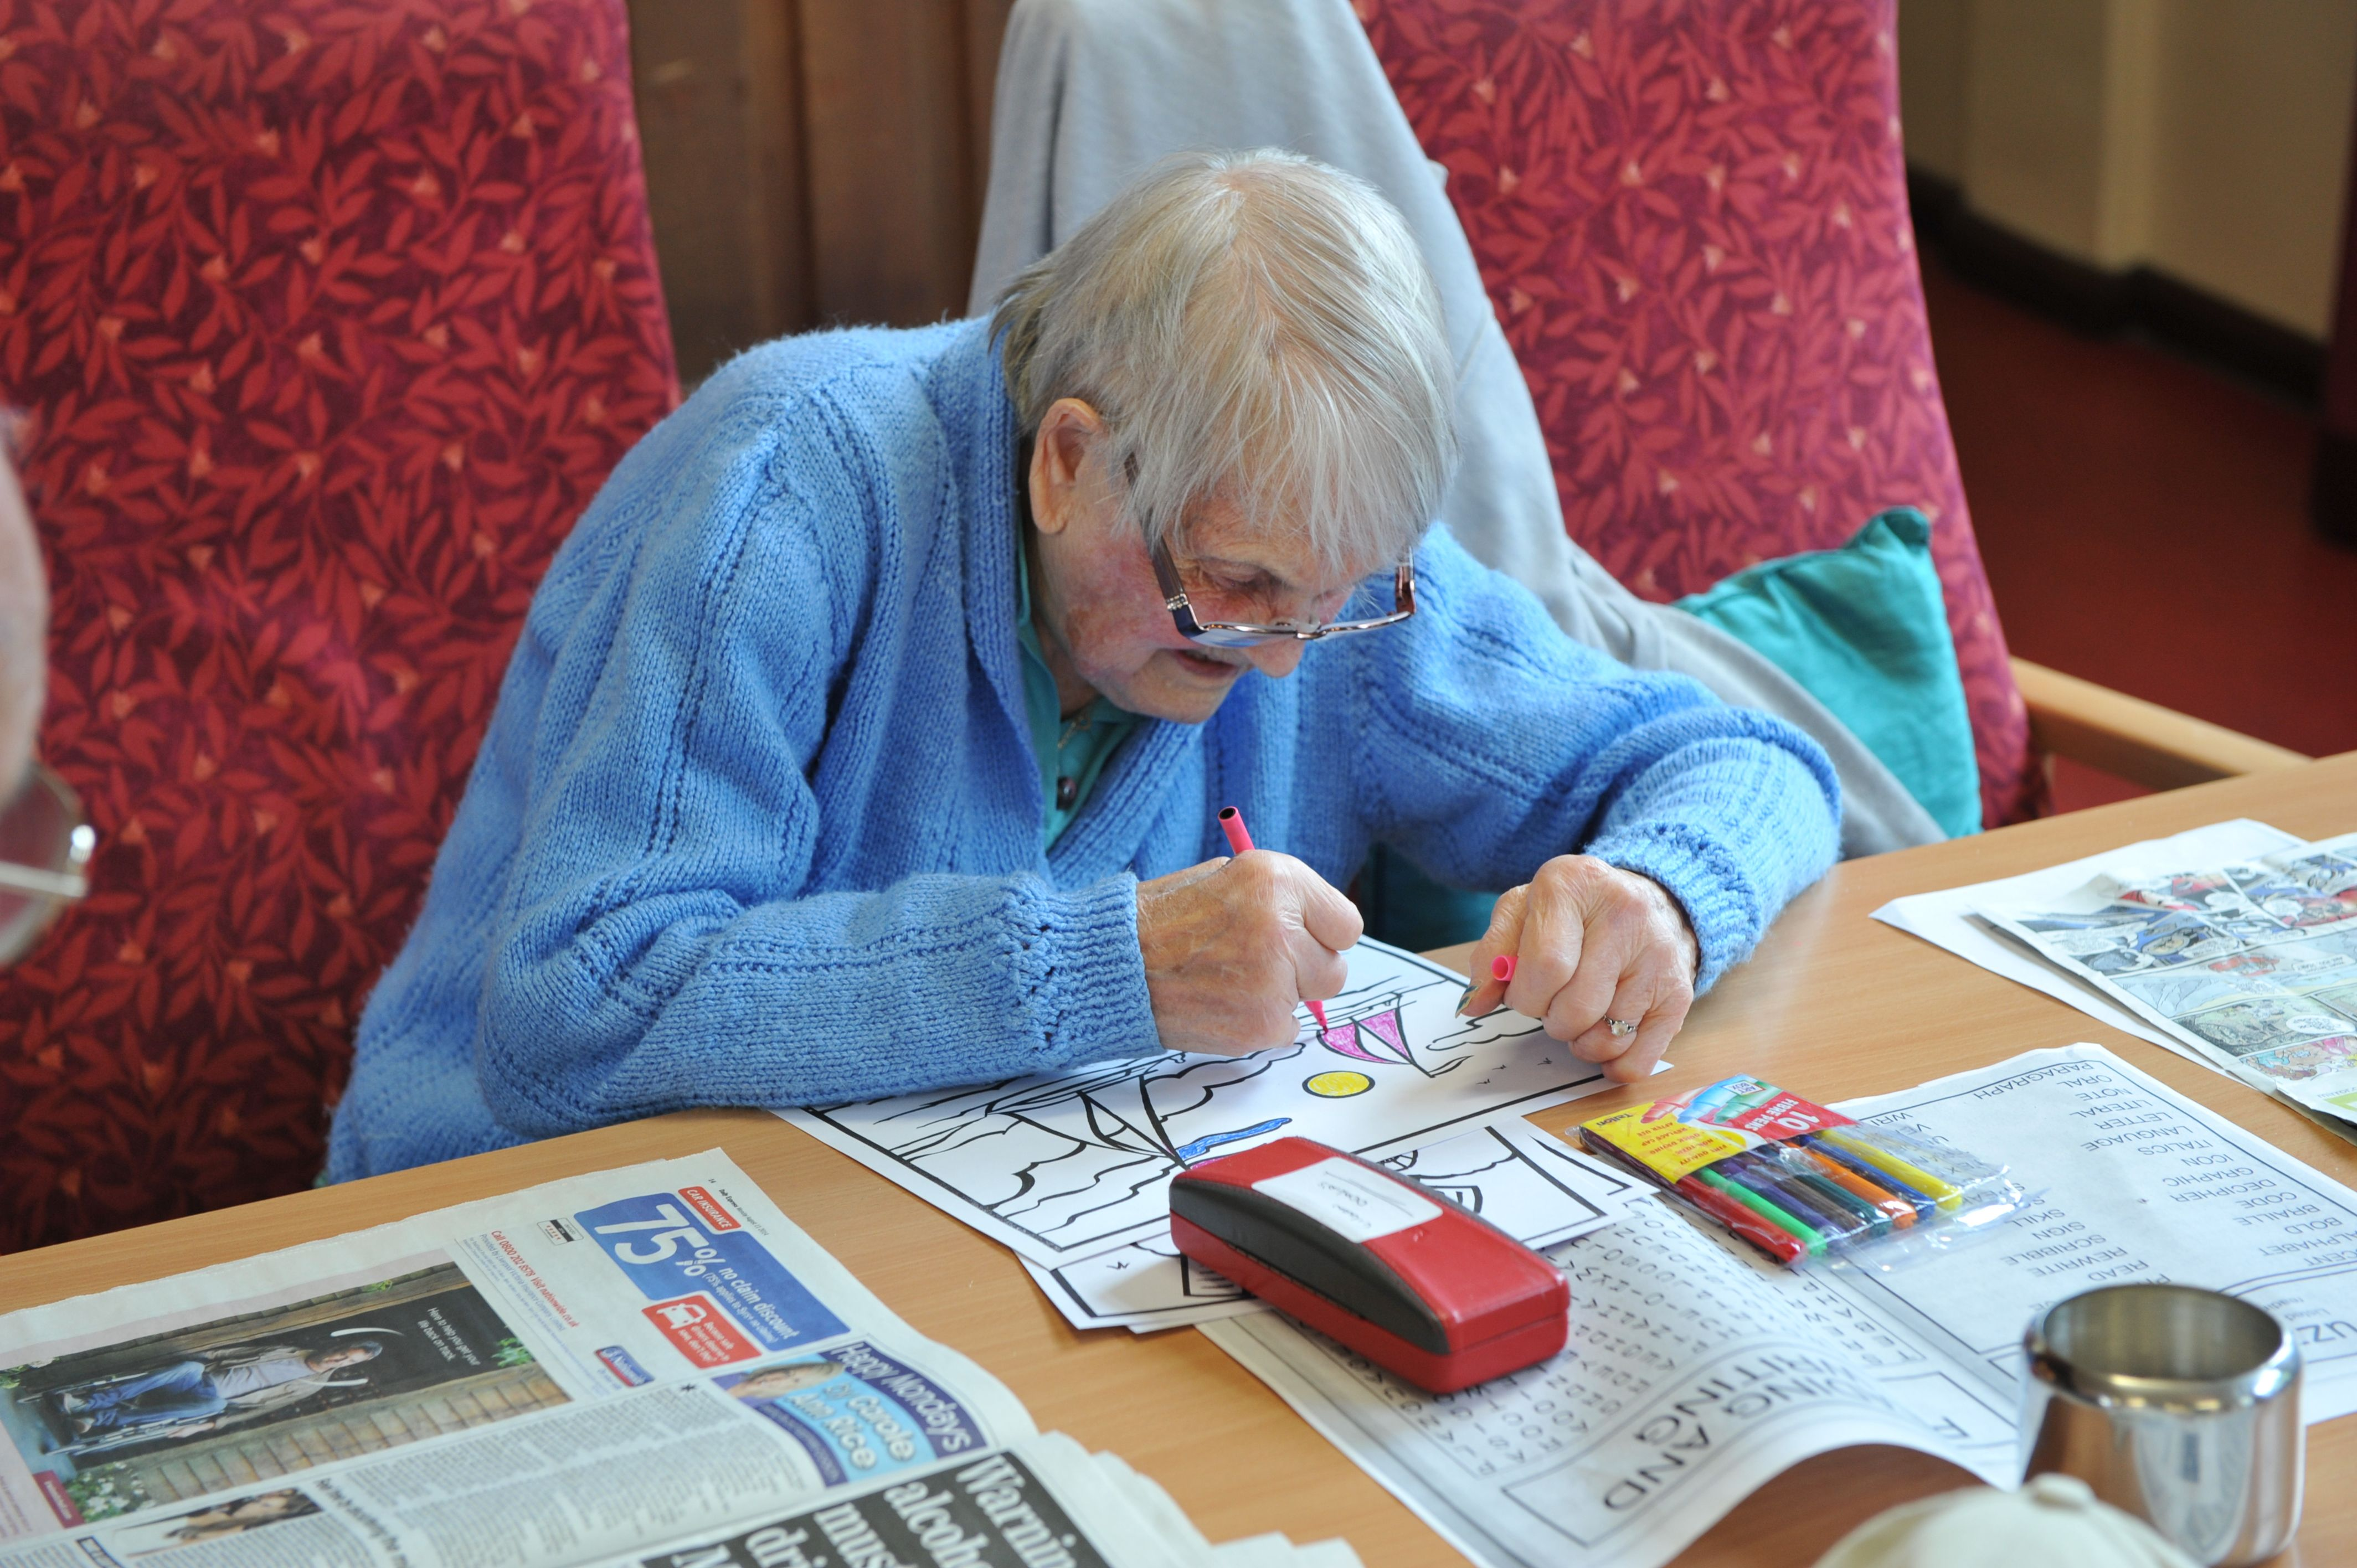 We have age appropriate colouring cards, books and